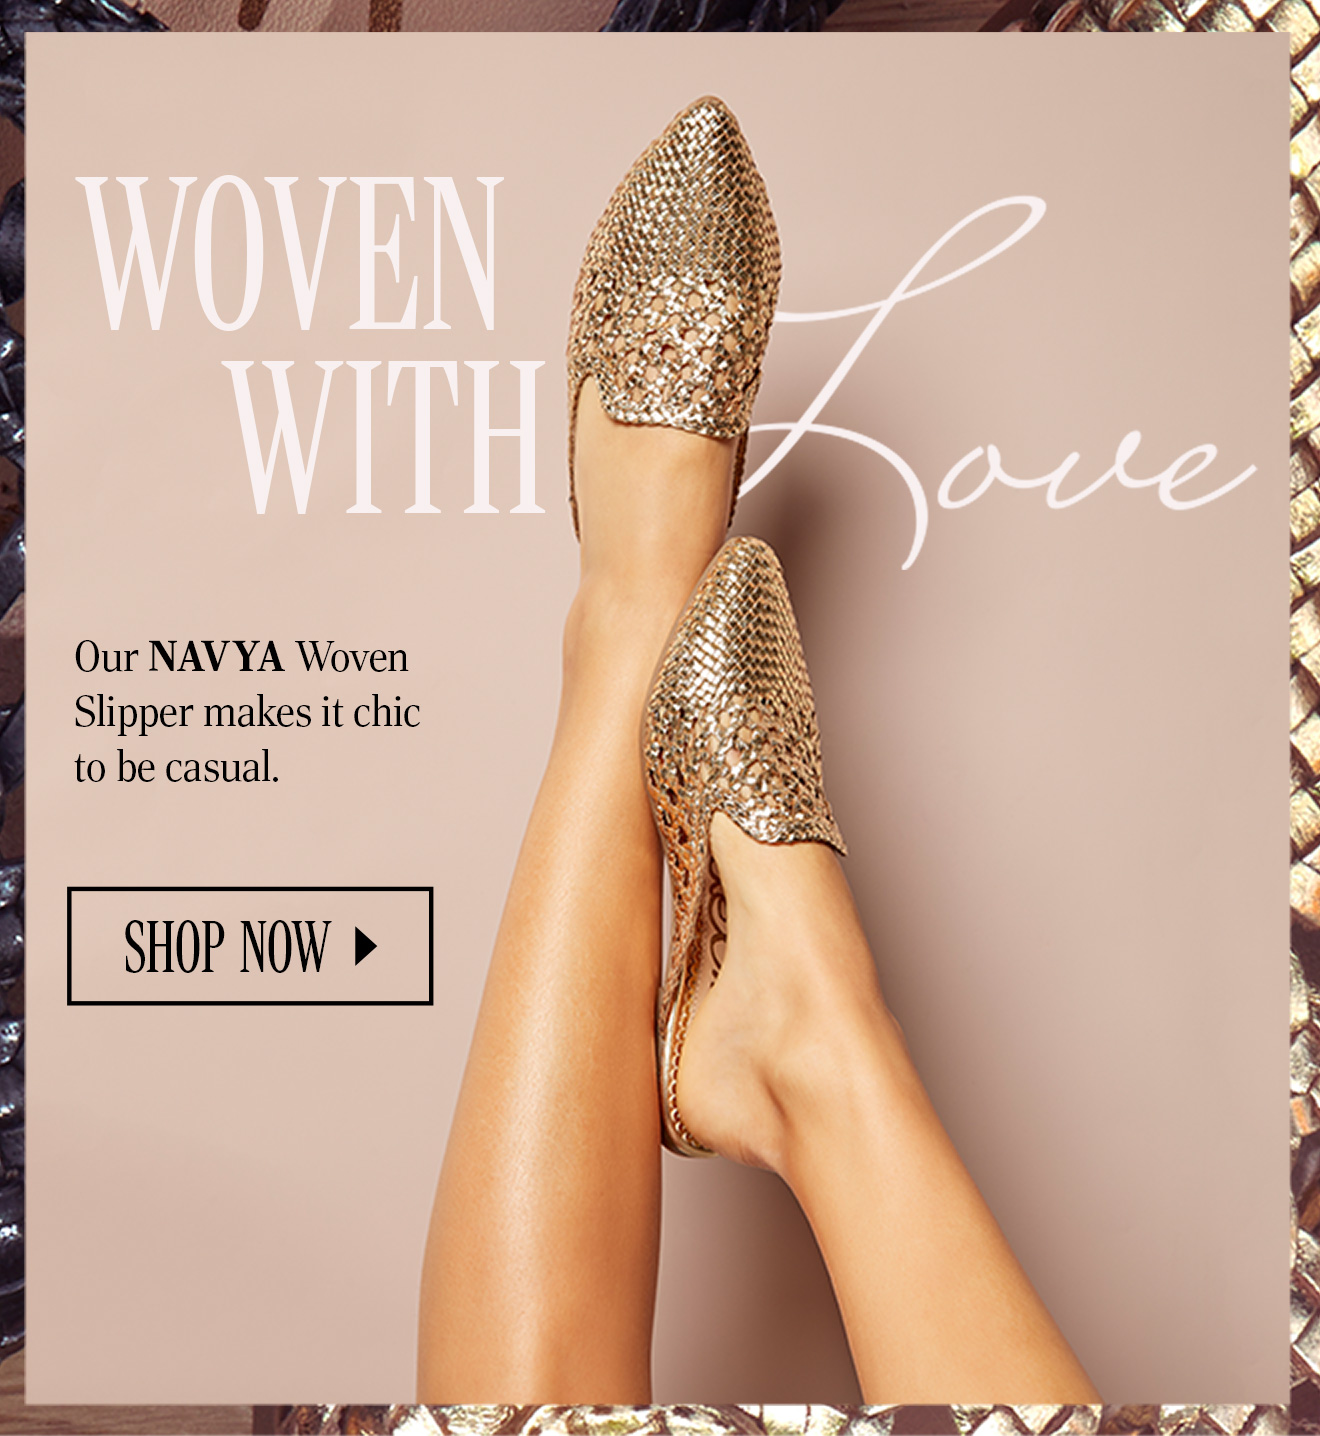 WOVEN WITH LOVE. Our NAVYA Woven Slipper makes it chic to be casual. SHOP NOW